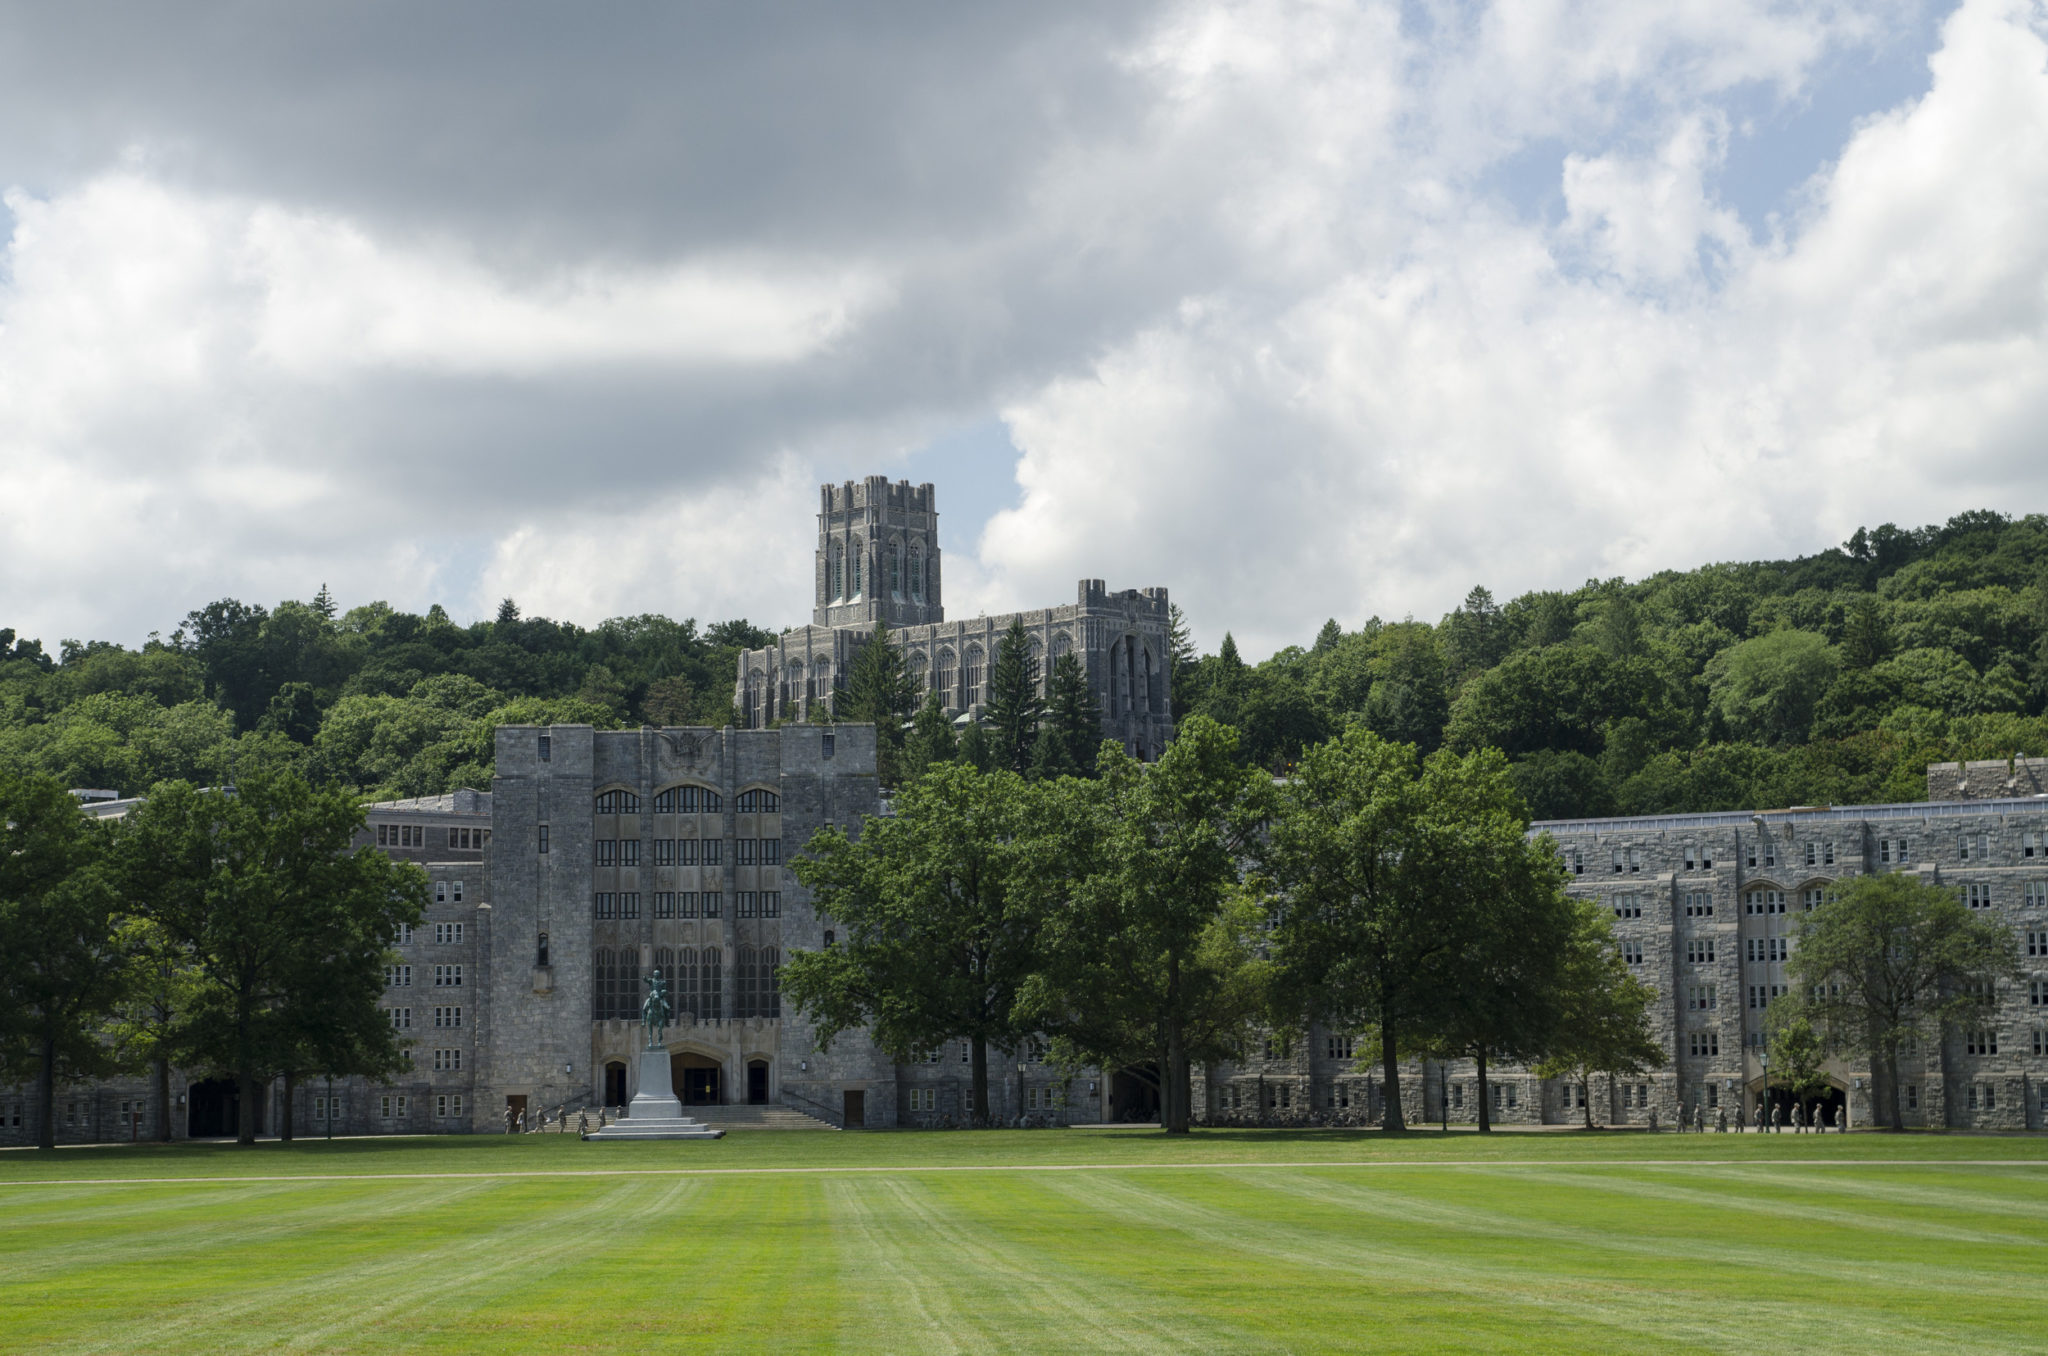 West Point training accident victim Christopher Morgan was law student, wrestler